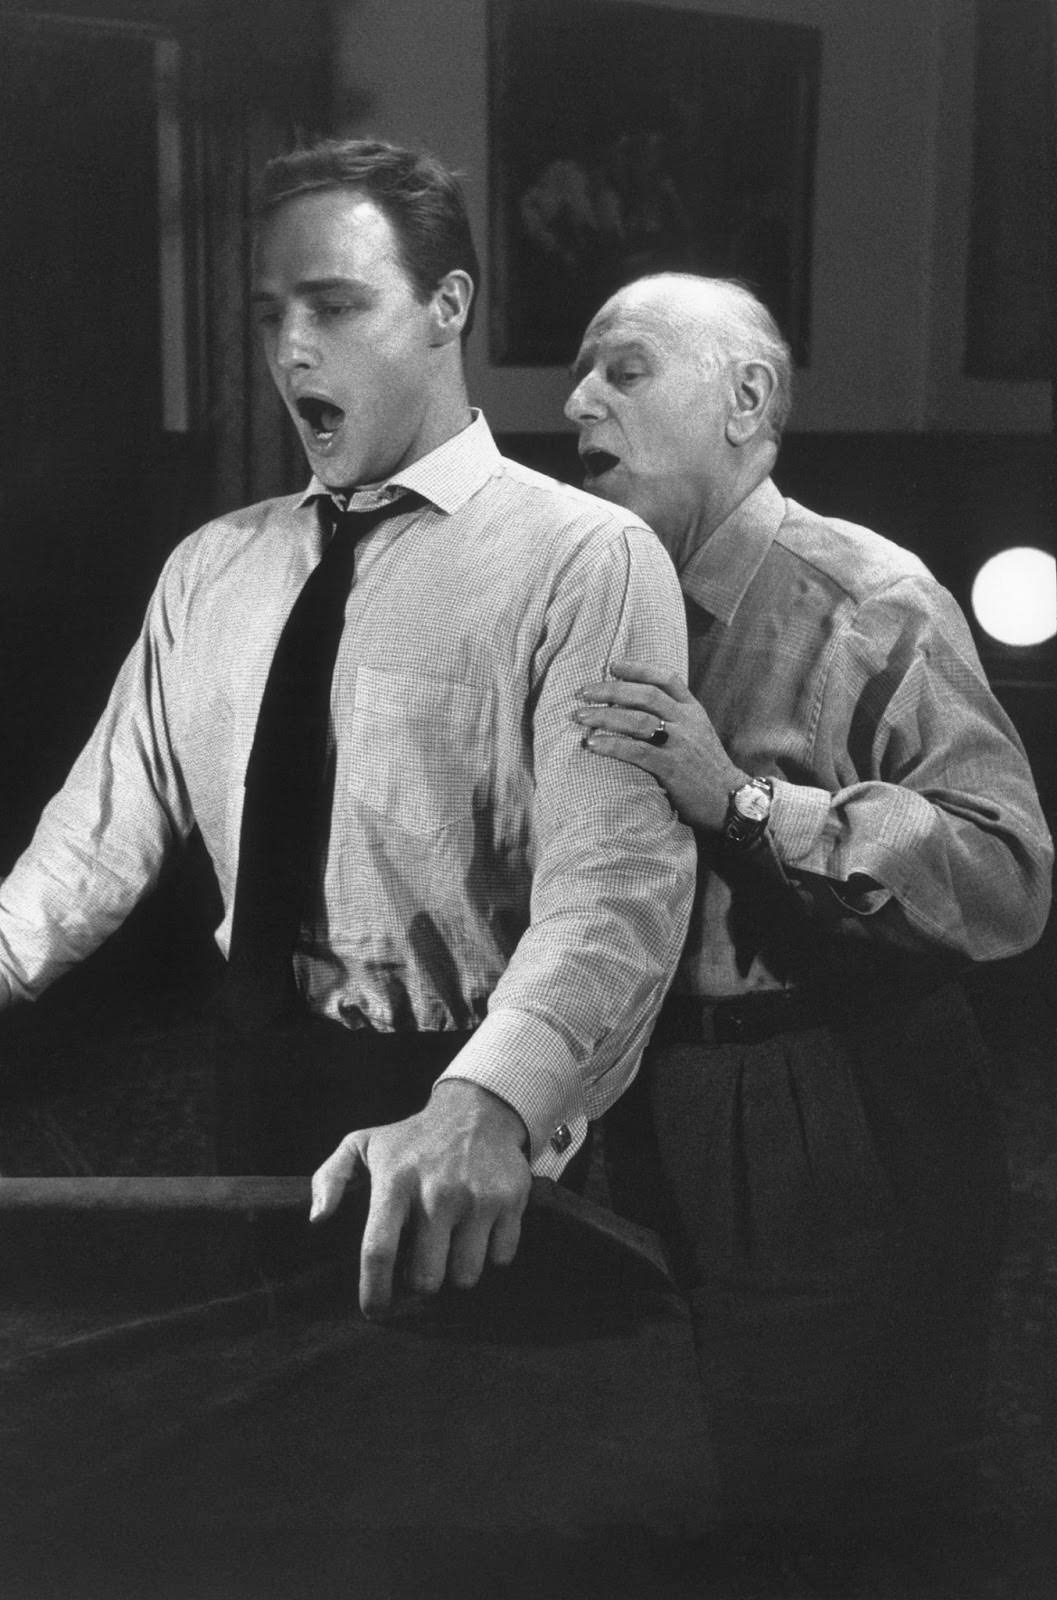 """Marlon Brando practices with his singing coach for his role in """"Guys and Dolls,"""" Goldwyn Studios, 1955"""